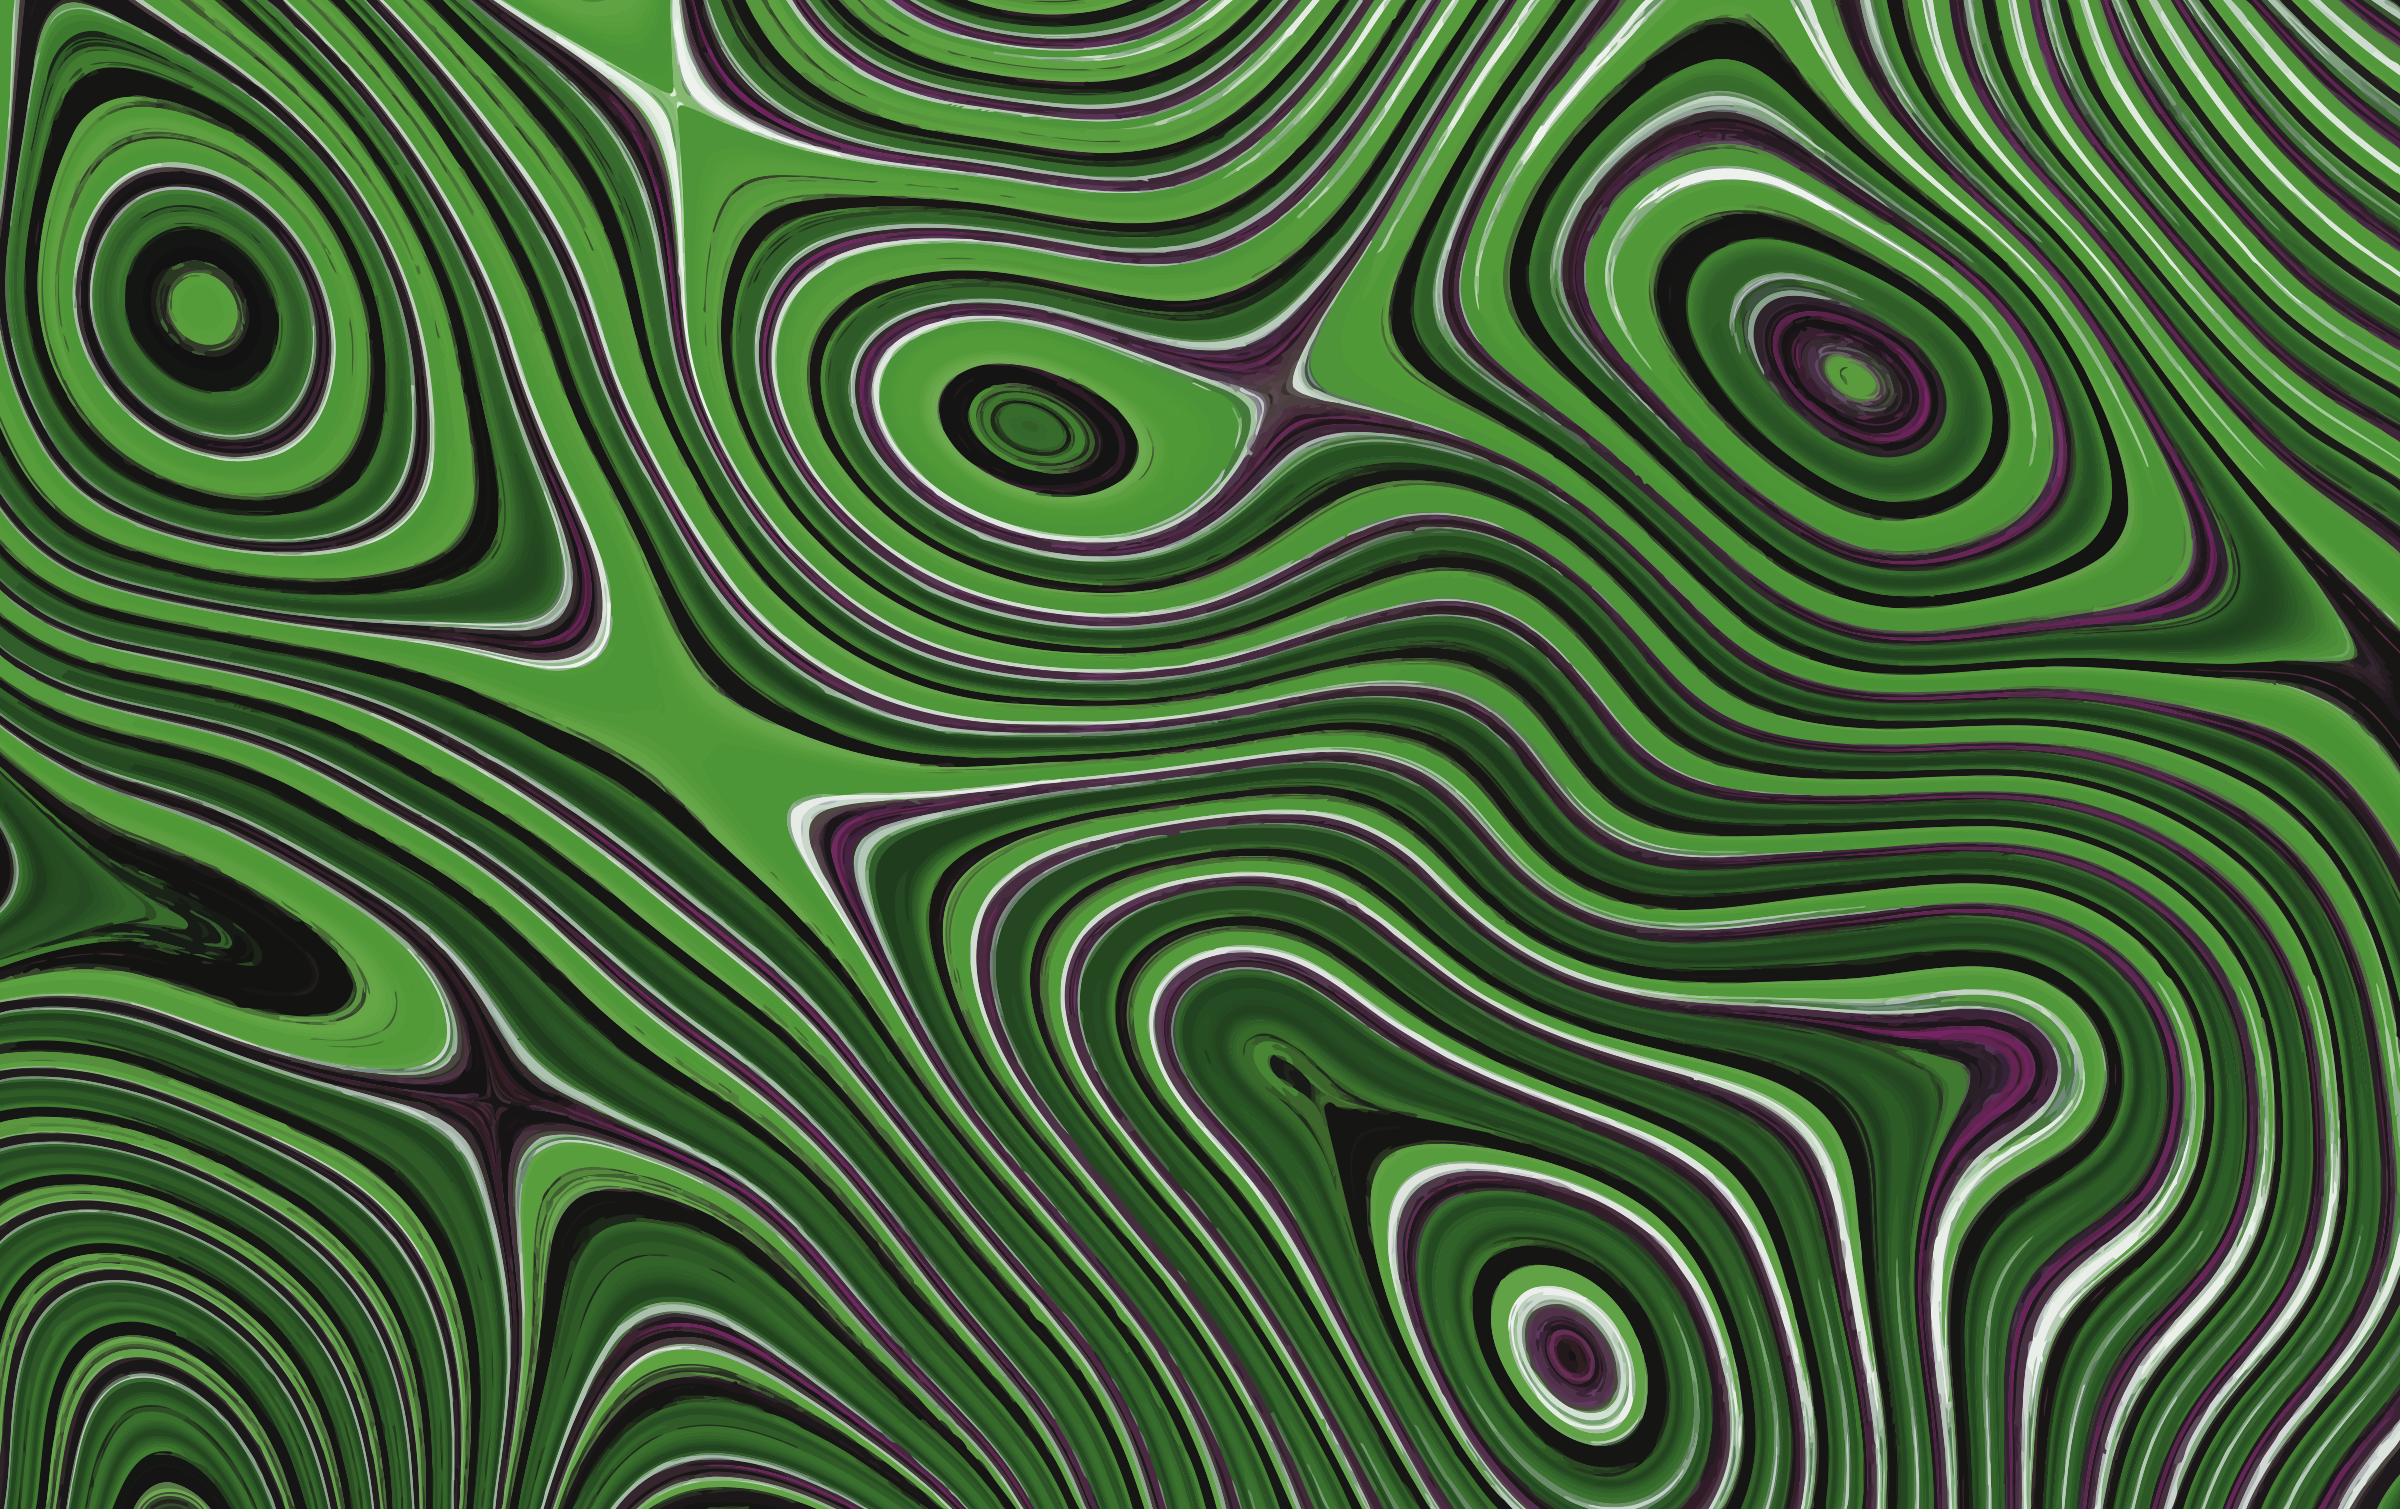 Background pattern 115 (colour 3) by Firkin